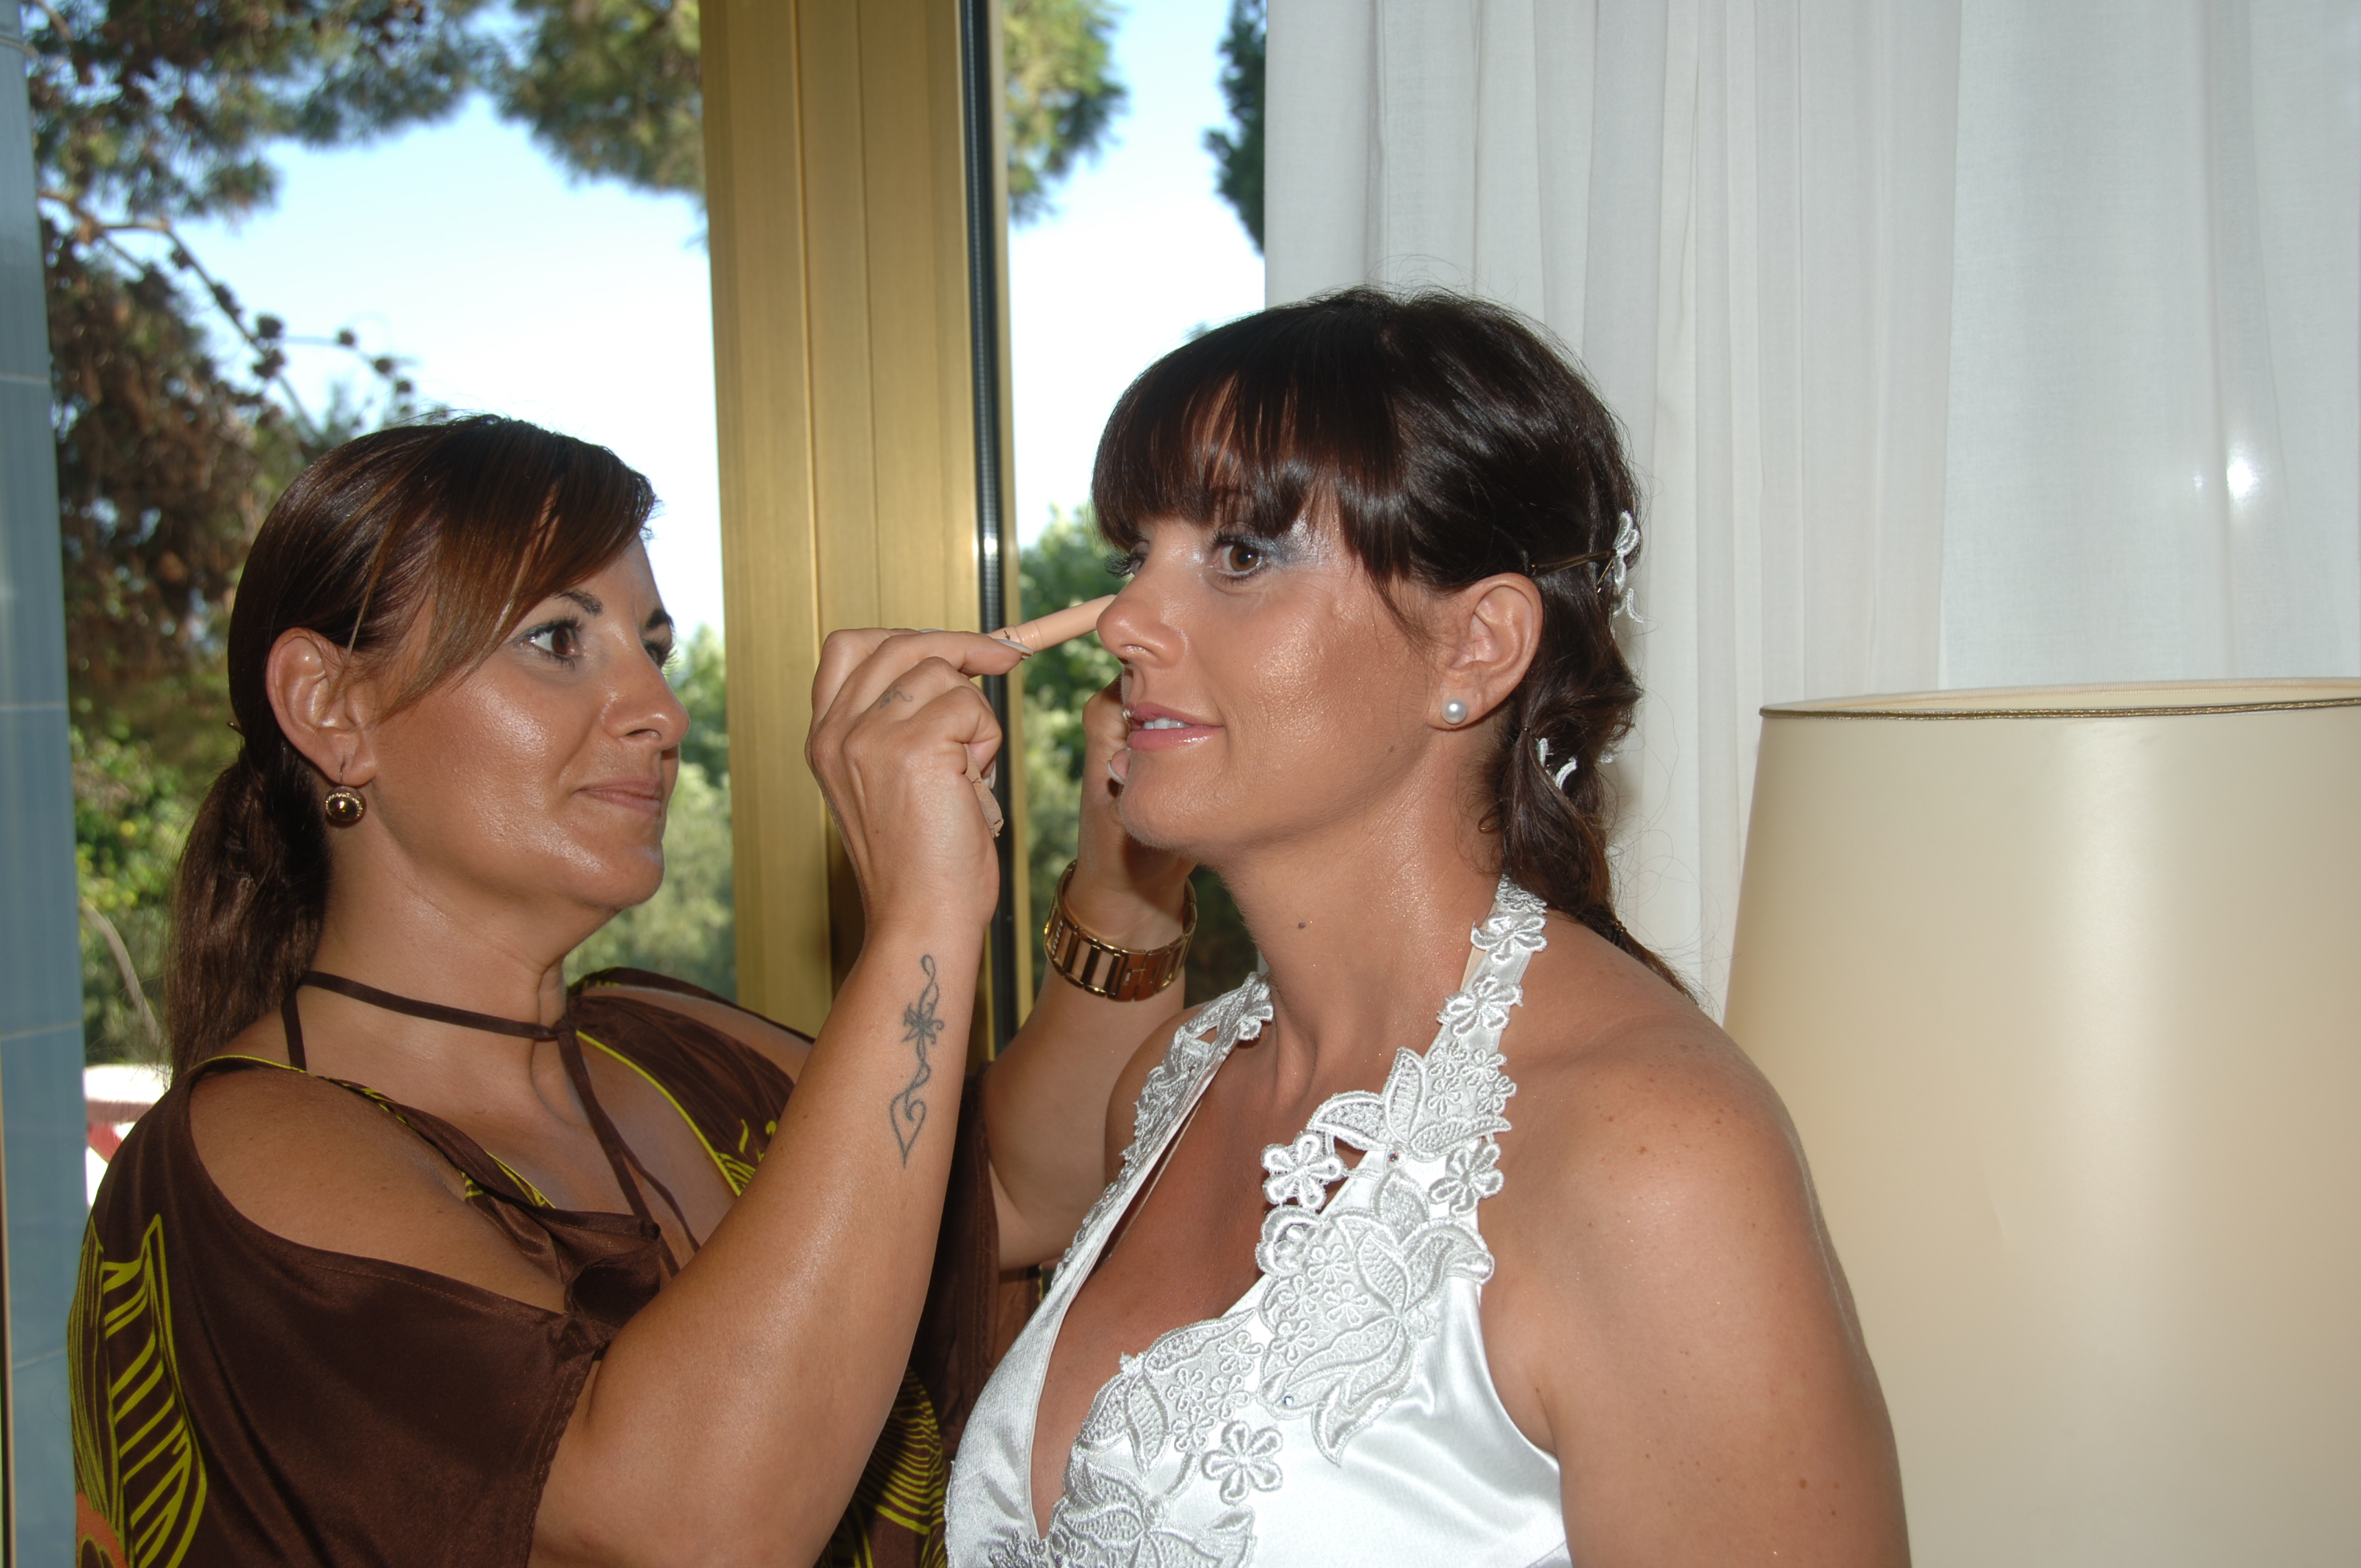 http://www.weddingamalfi.com/wp-content/uploads/Enza-and-Mario-bridal-makeup.jpg